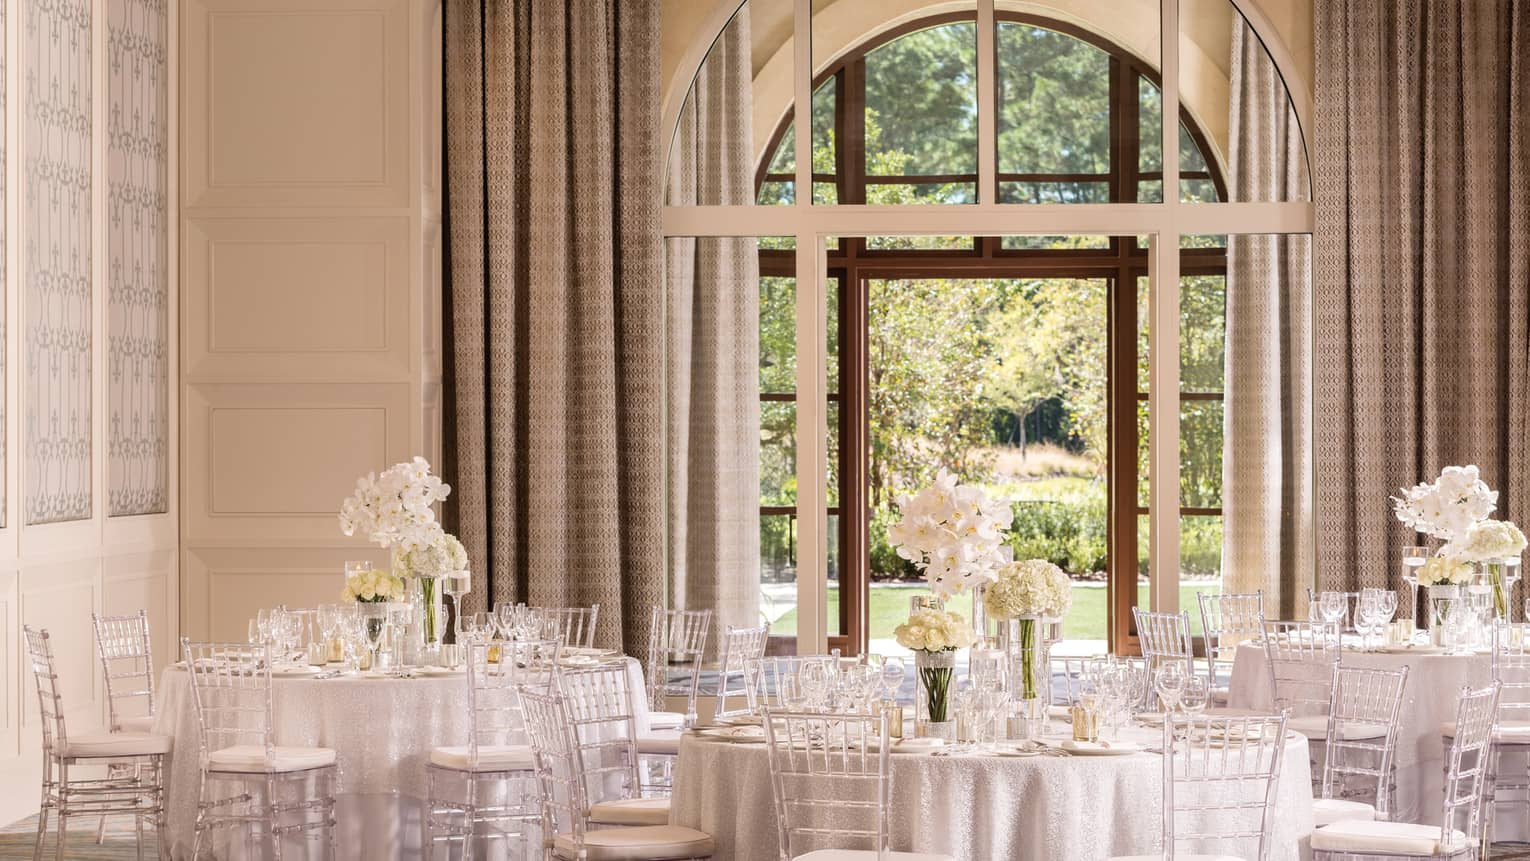 The Palm Ballroom with elegant white banquet tables under large, sunny arched window